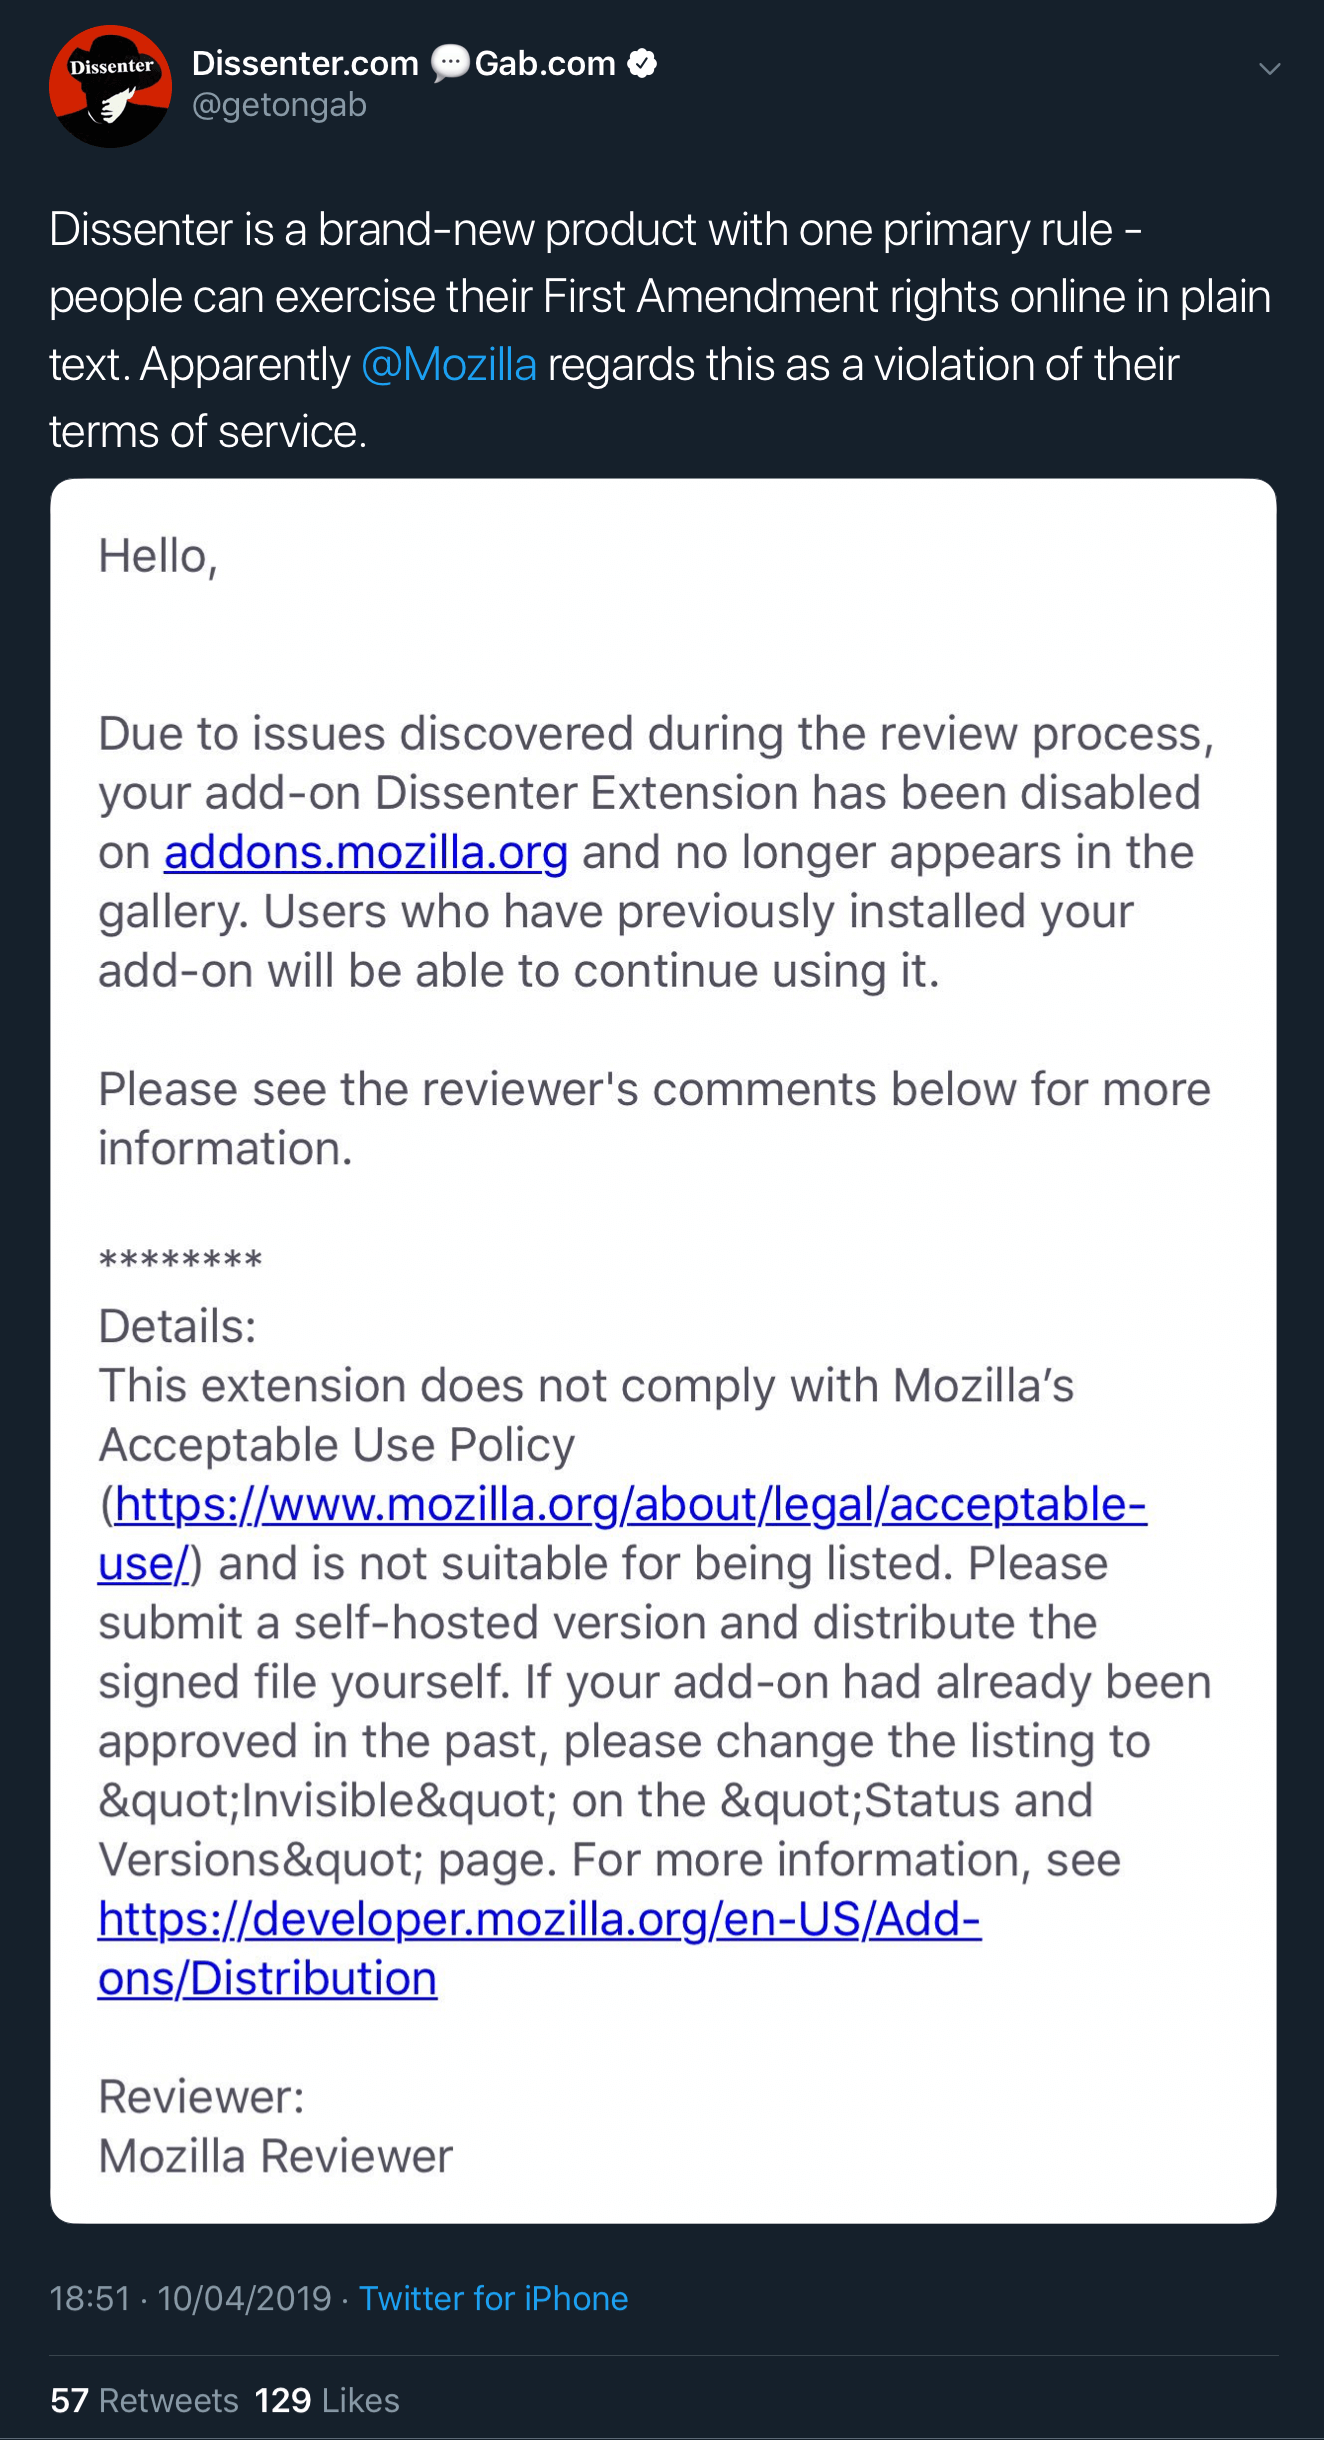 The email informing Dissenter that it has been disabled and will no longer appear in the Firefox extensions gallery.